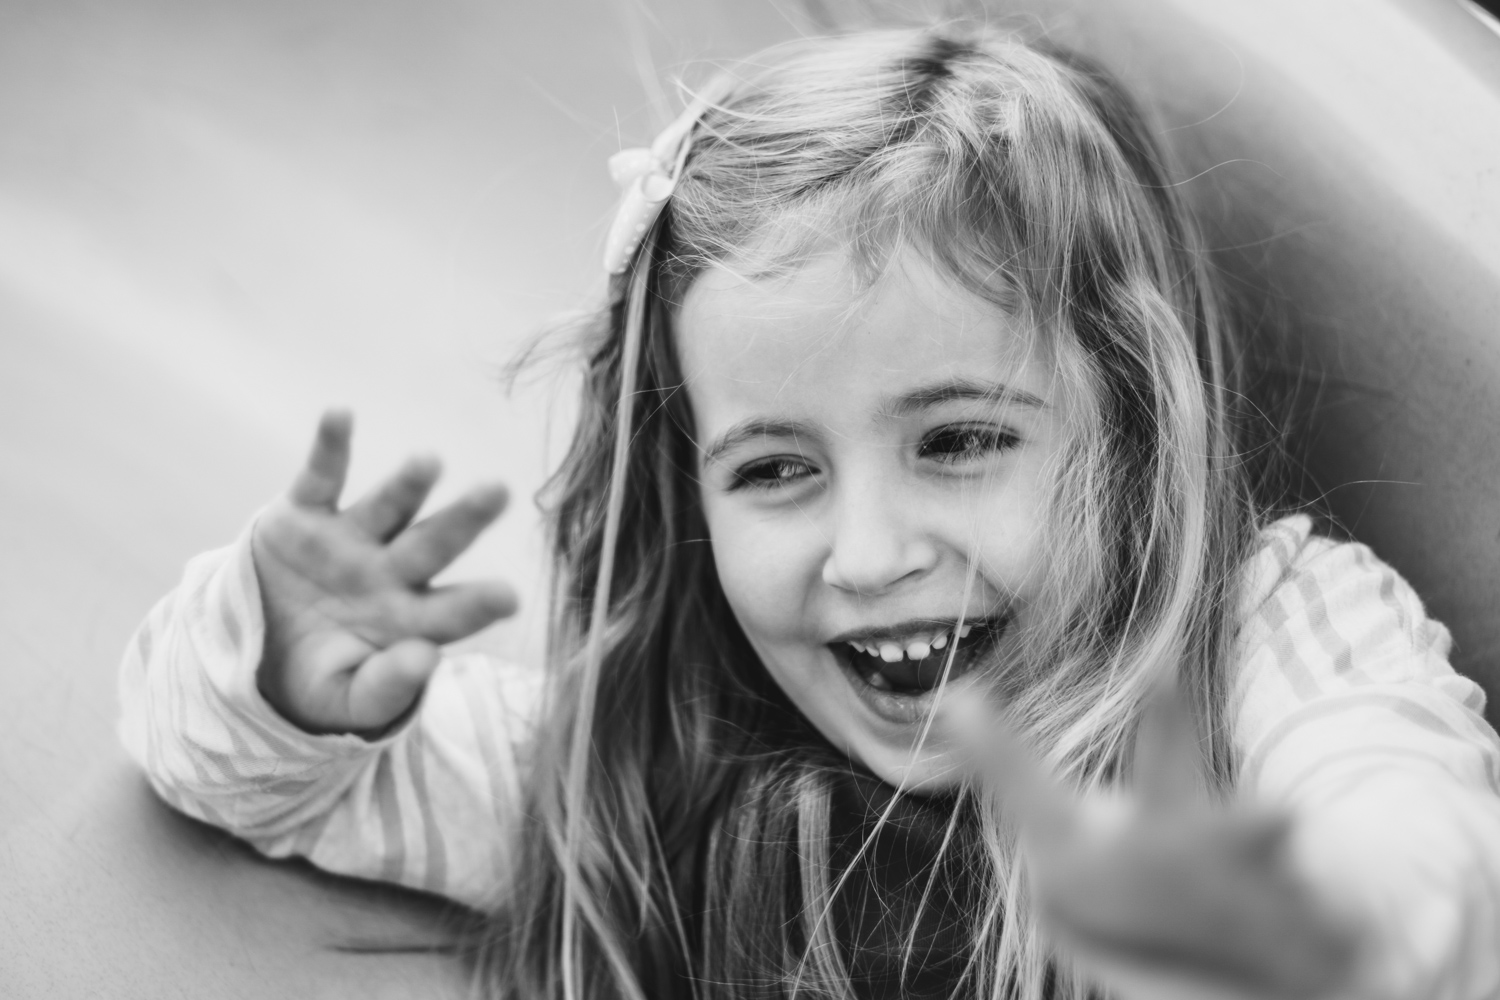 Portrait of a little girl laughing on a slide.